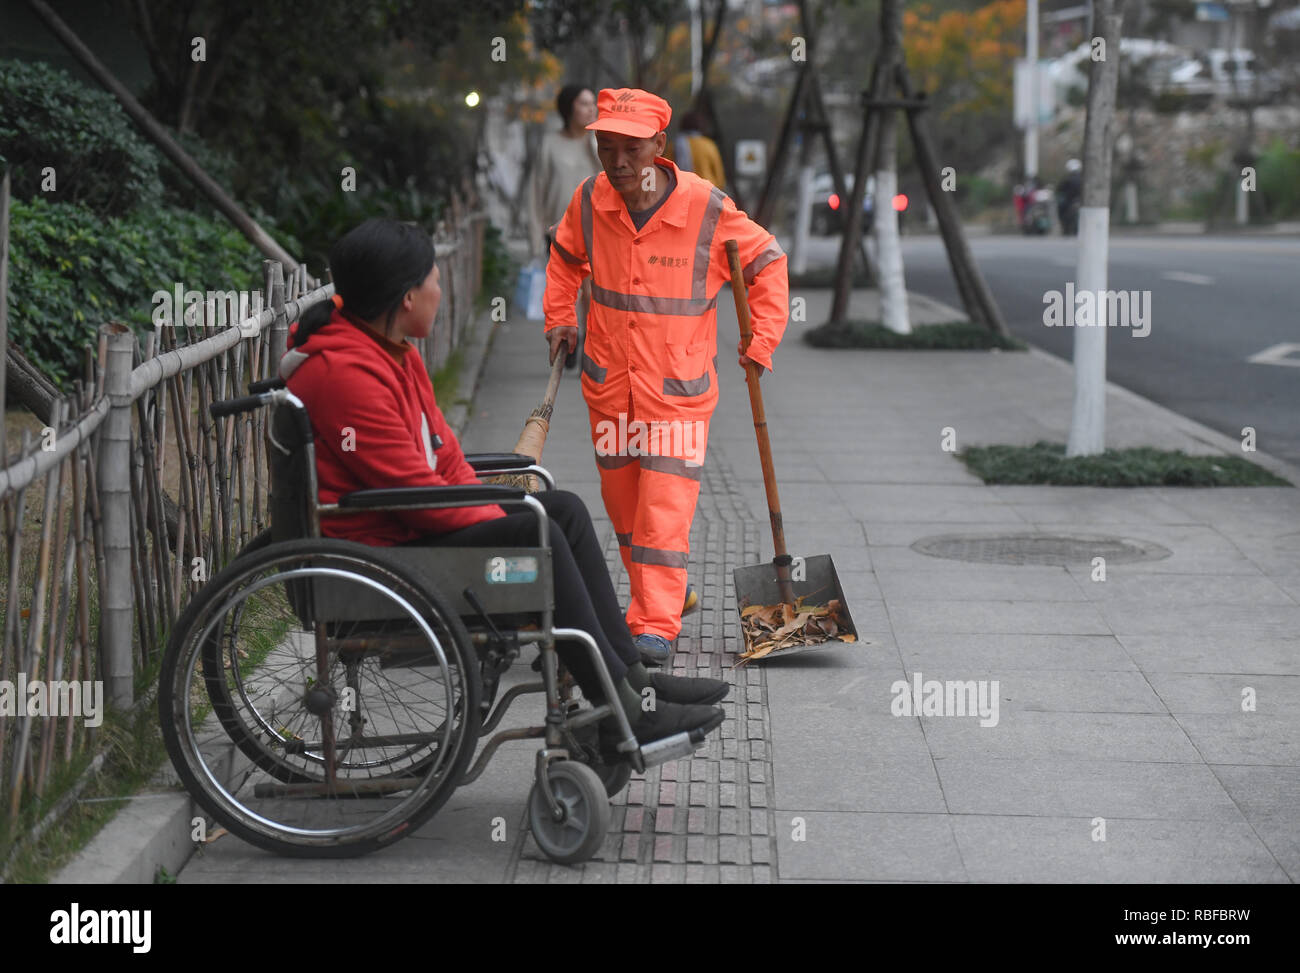 (190110) -- LONGYAN, Jan. 10, 2019 (Xinhua) -- Sanitation worker Dong Jidong cleans the streets accompanied by his handicapped wife Dong Jinxiang in Xinluo District of Longyan City, southeast China's Fujian Province, Jan. 8, 2019. Due to femoral head necrosis disease, Dong Jinxiang has been living on a wheelchair for about a decade. To take care of his handicapped wife, Dong Jidong, who himself has been afflicted with ankylosing spondylitis, gave up his work in a cement plant and chose to clean the streets near their home two years ago just in order to take better care of his wife. Everyday, D - Stock Image